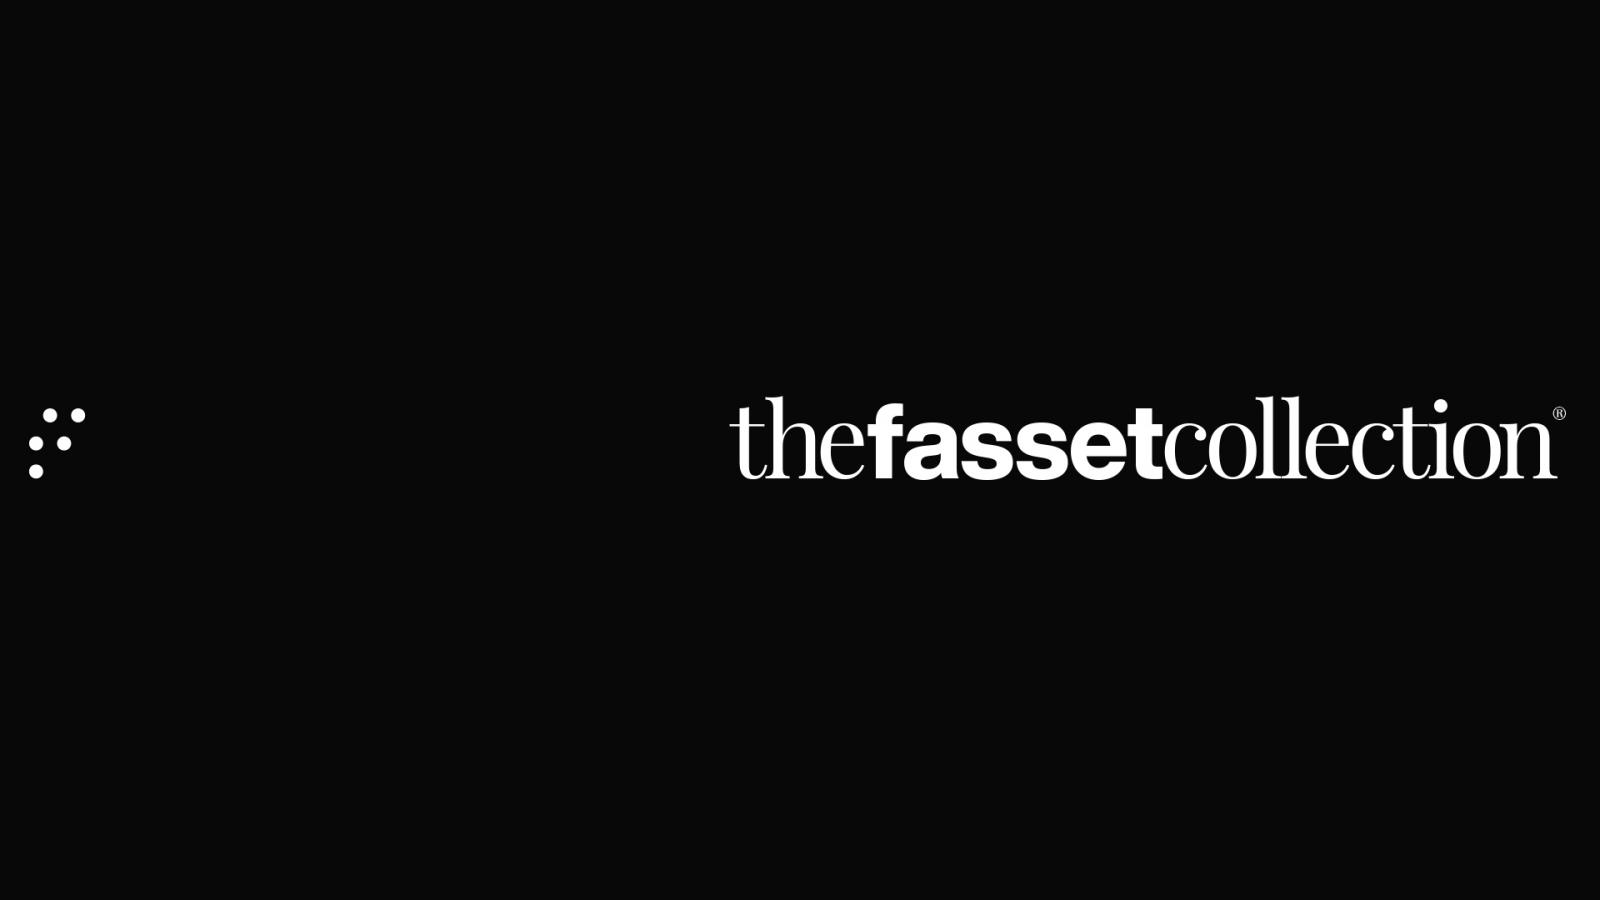 branding huisstijl logo the fasset collection